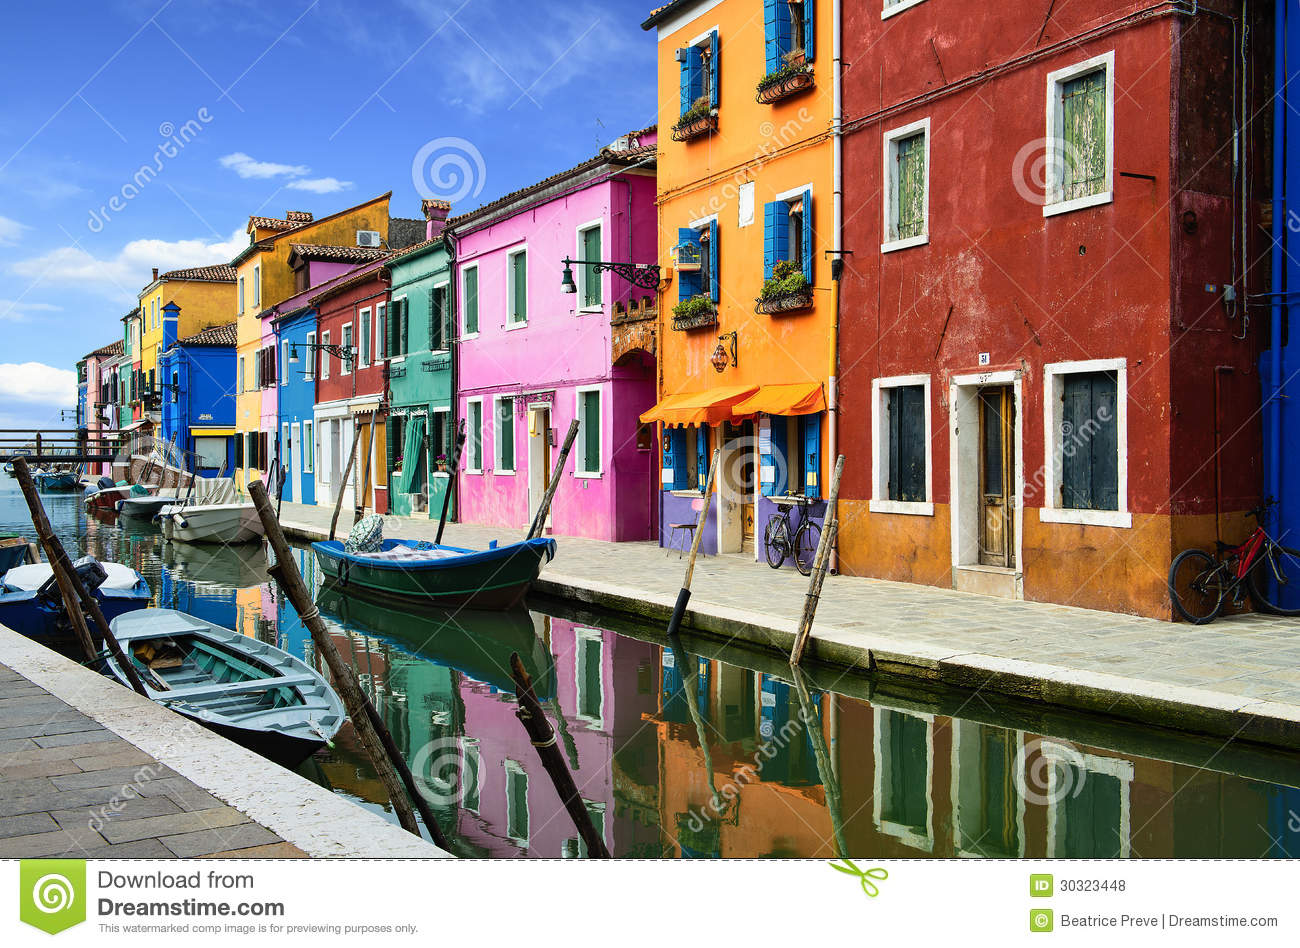 Free Download Residential Building Plans Burano Village Near Venise Royalty Free Stock Photos